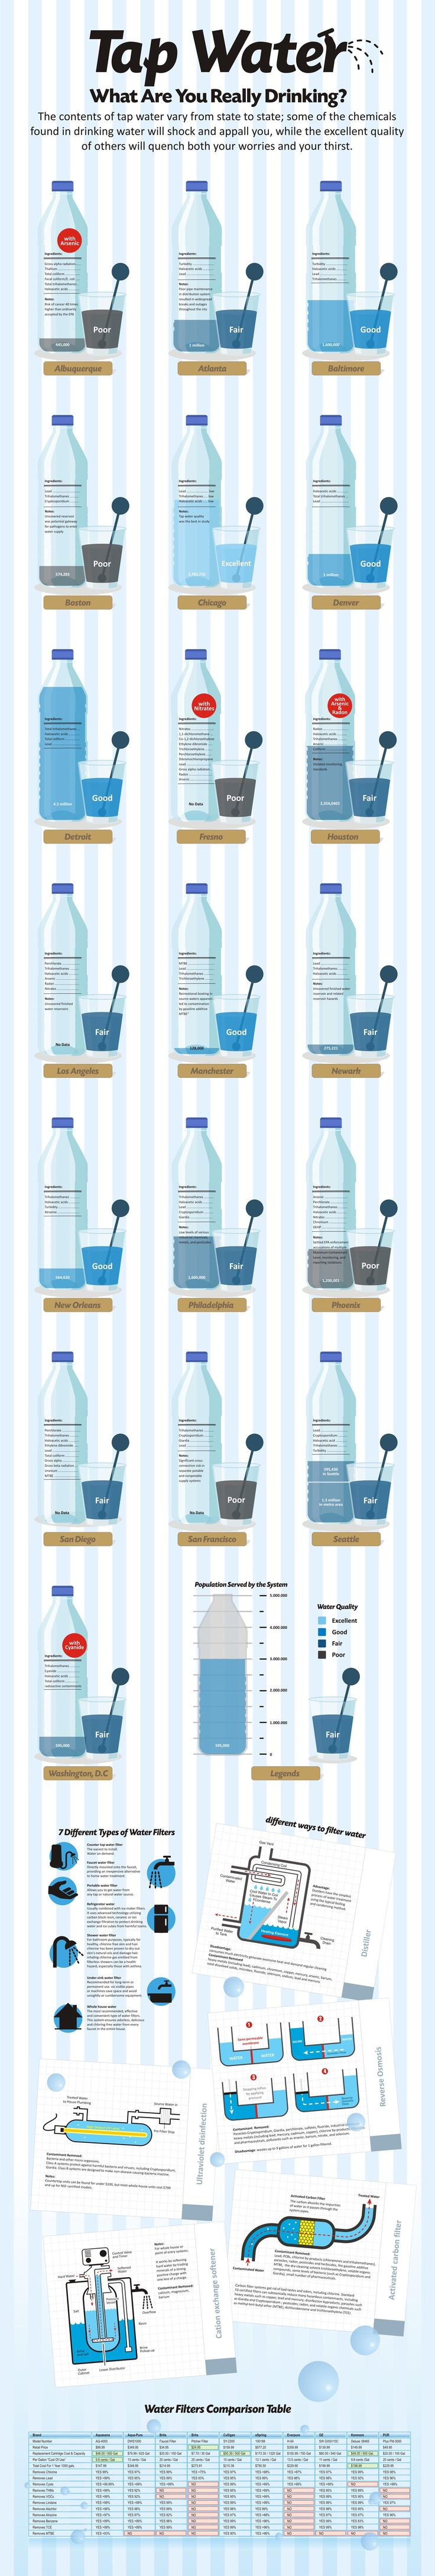 Infographics - Tap Water: What Are You Really Drinking?